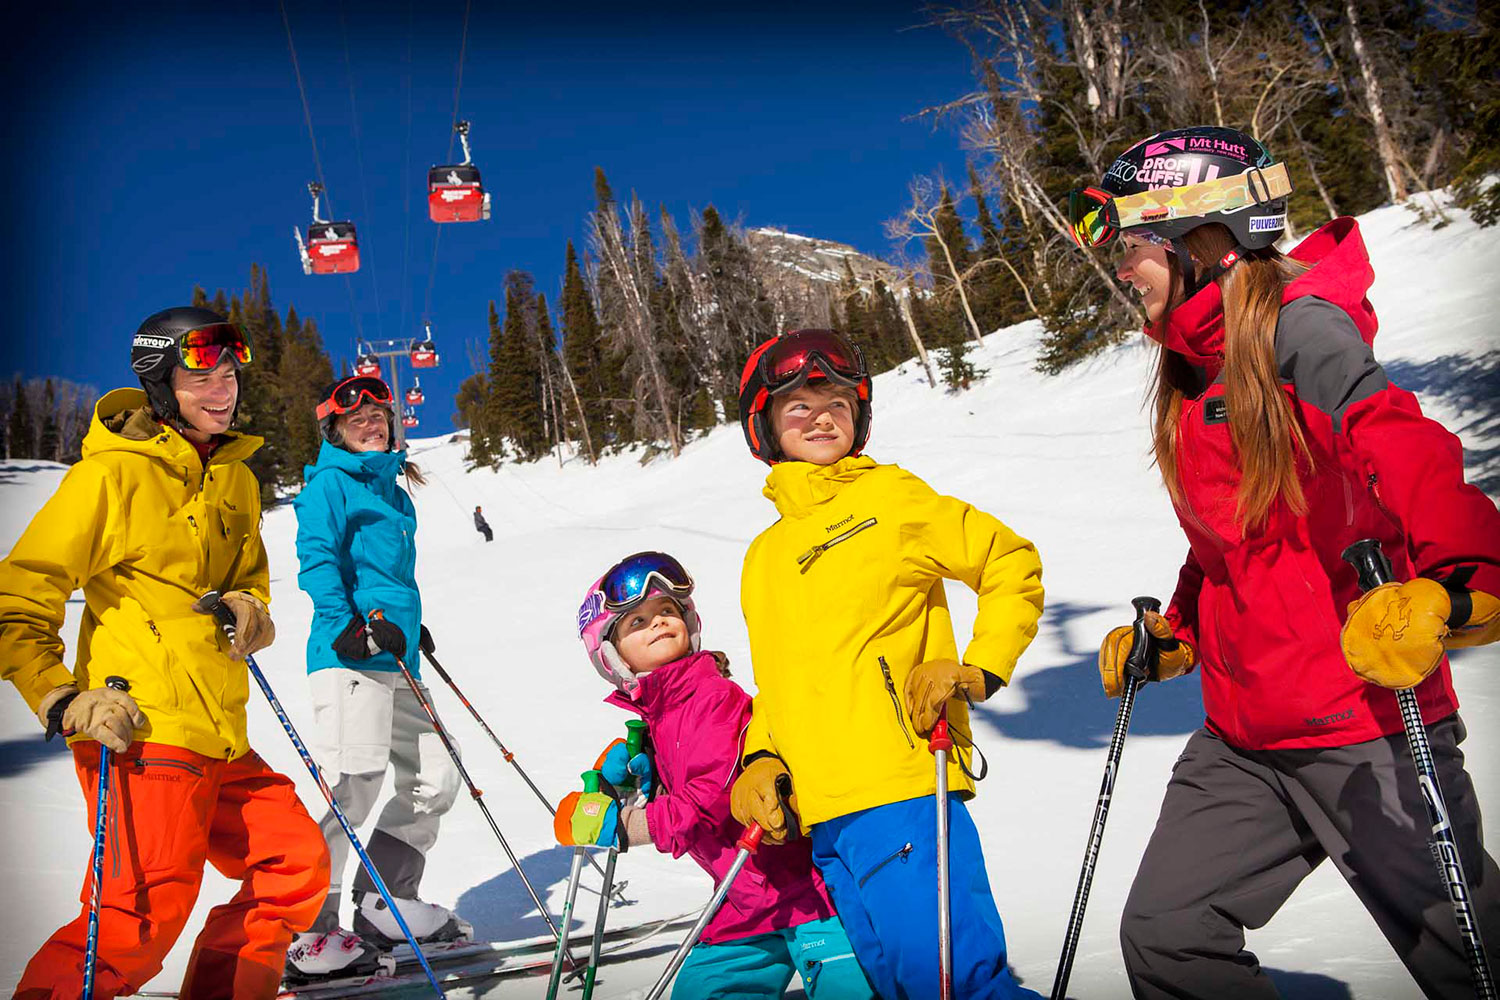 Ski lessons at Mountain Sports School Jackson Hole one of best ski resorts in the US